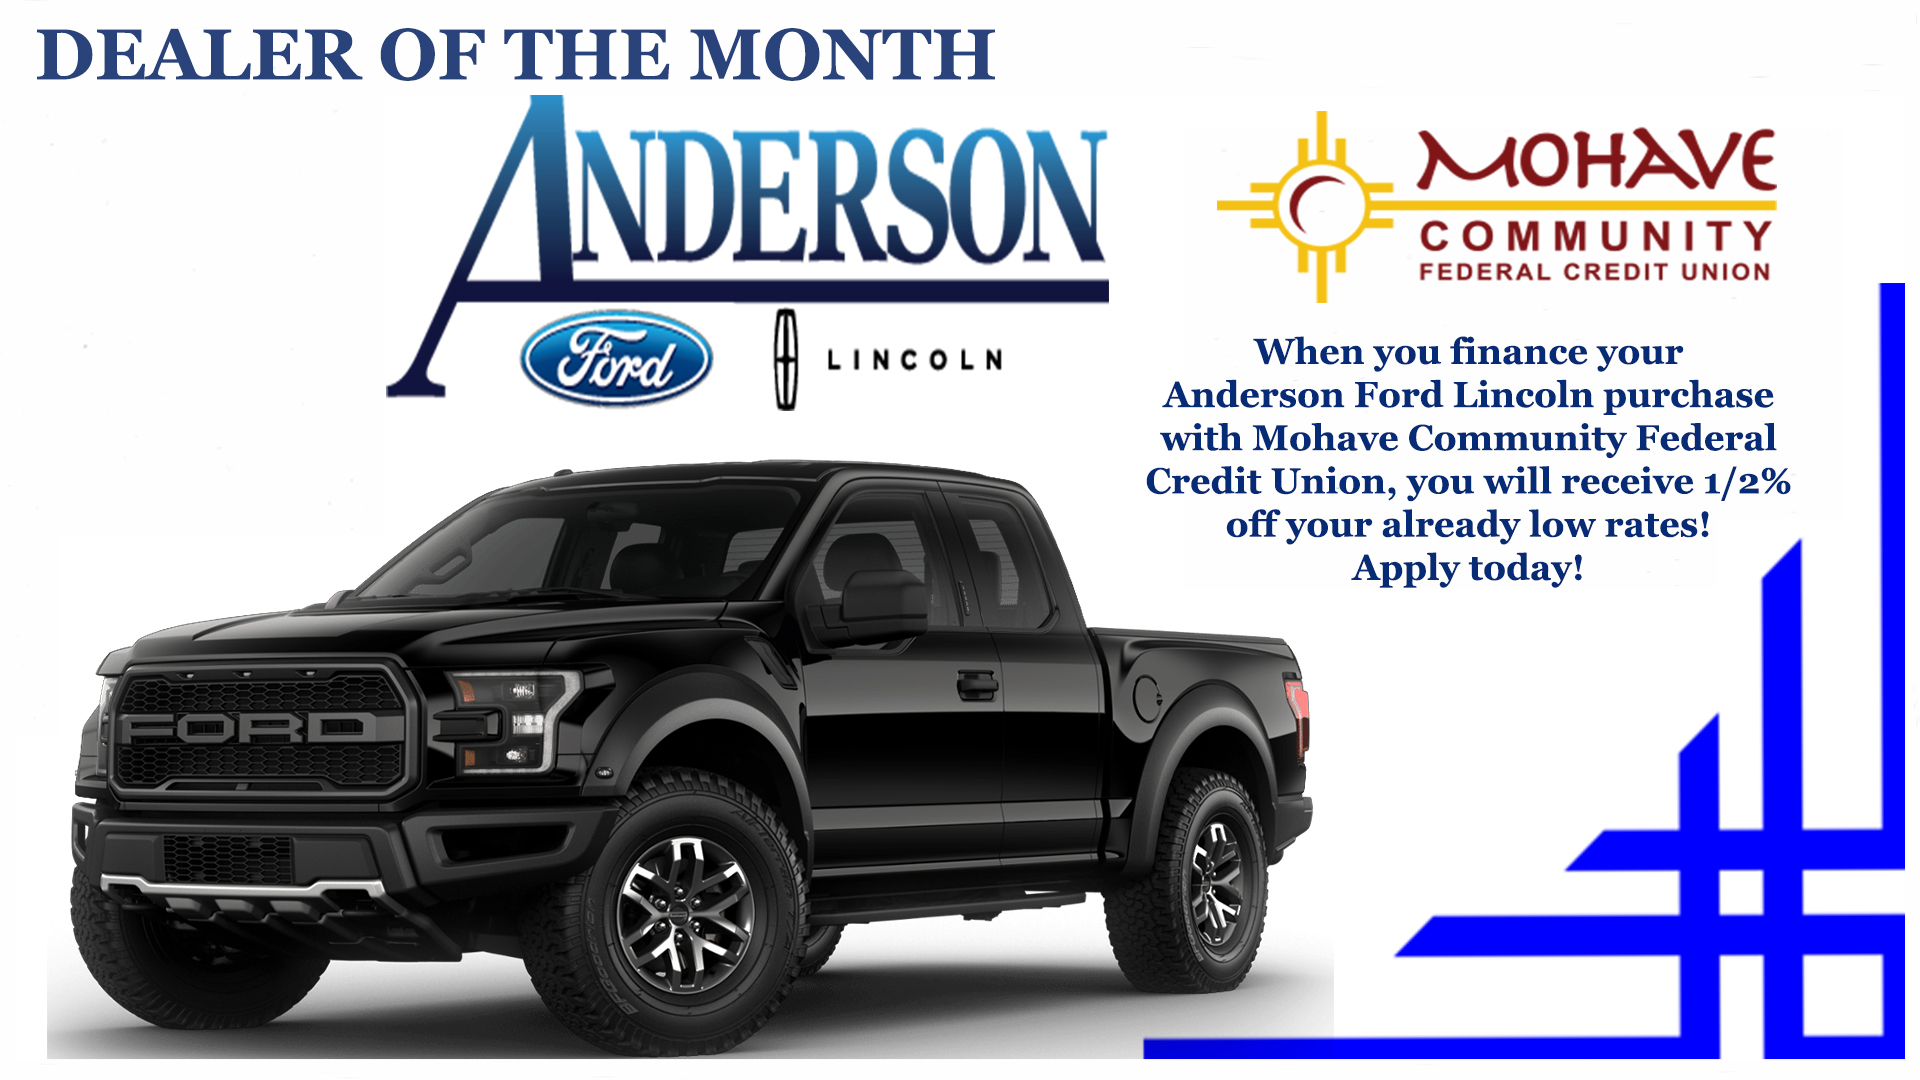 Anderson Ford is our Dealer of the Month! Take an additional 1/2% off your approved interest rate. Call MCFCU at 928-753-8000 for more details.